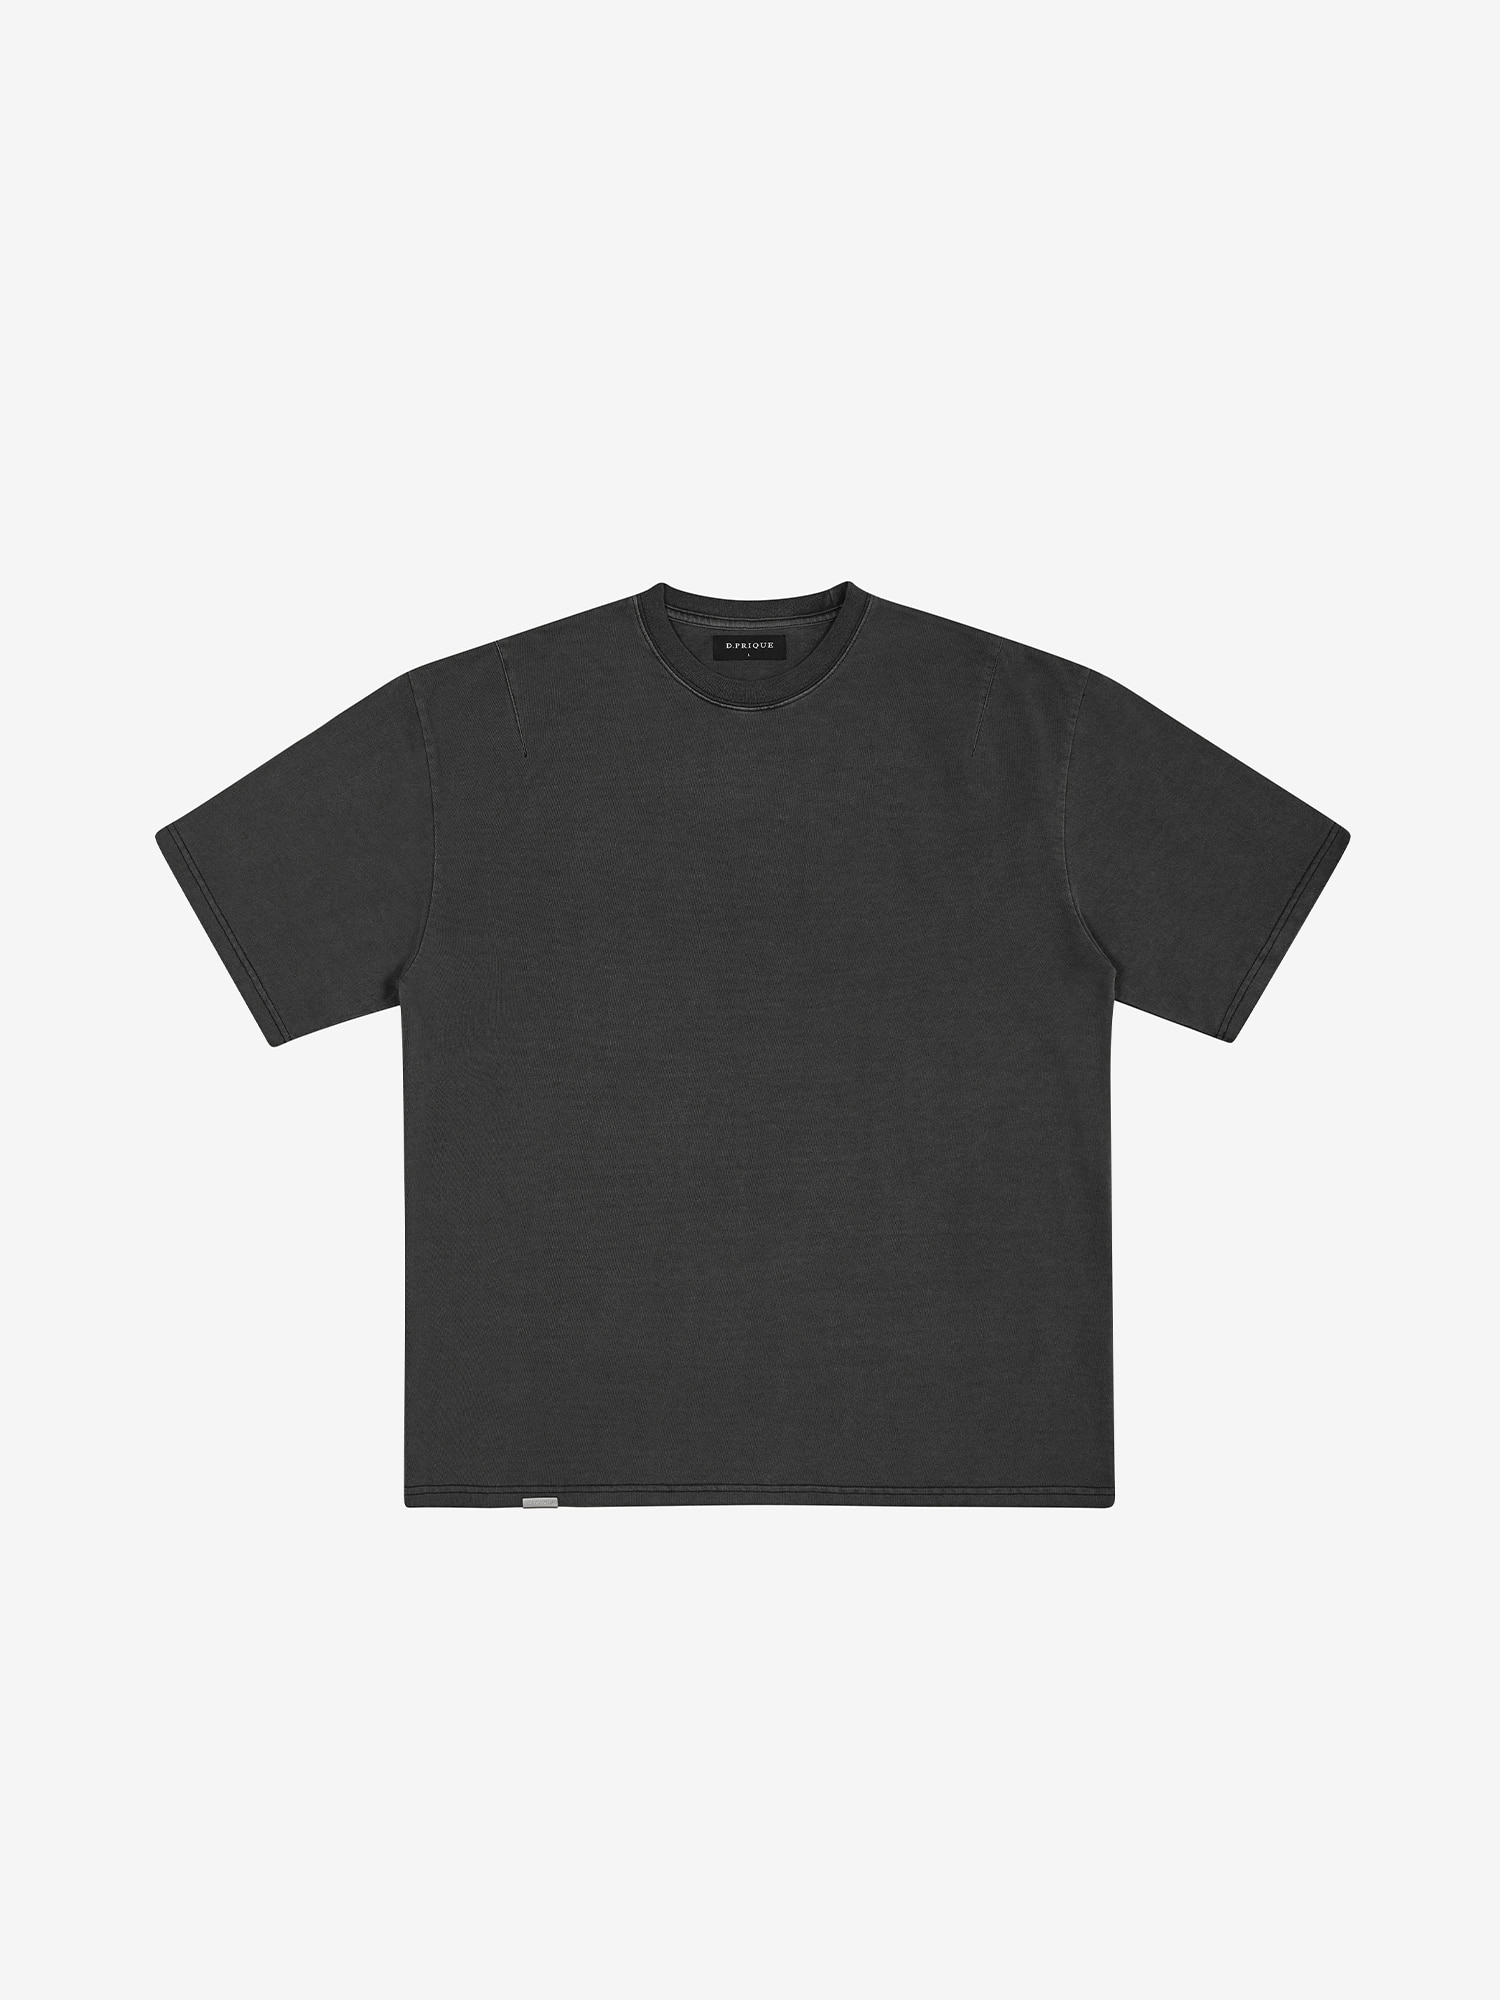 CLASSIC T-SHIRT - WASHED BLACK